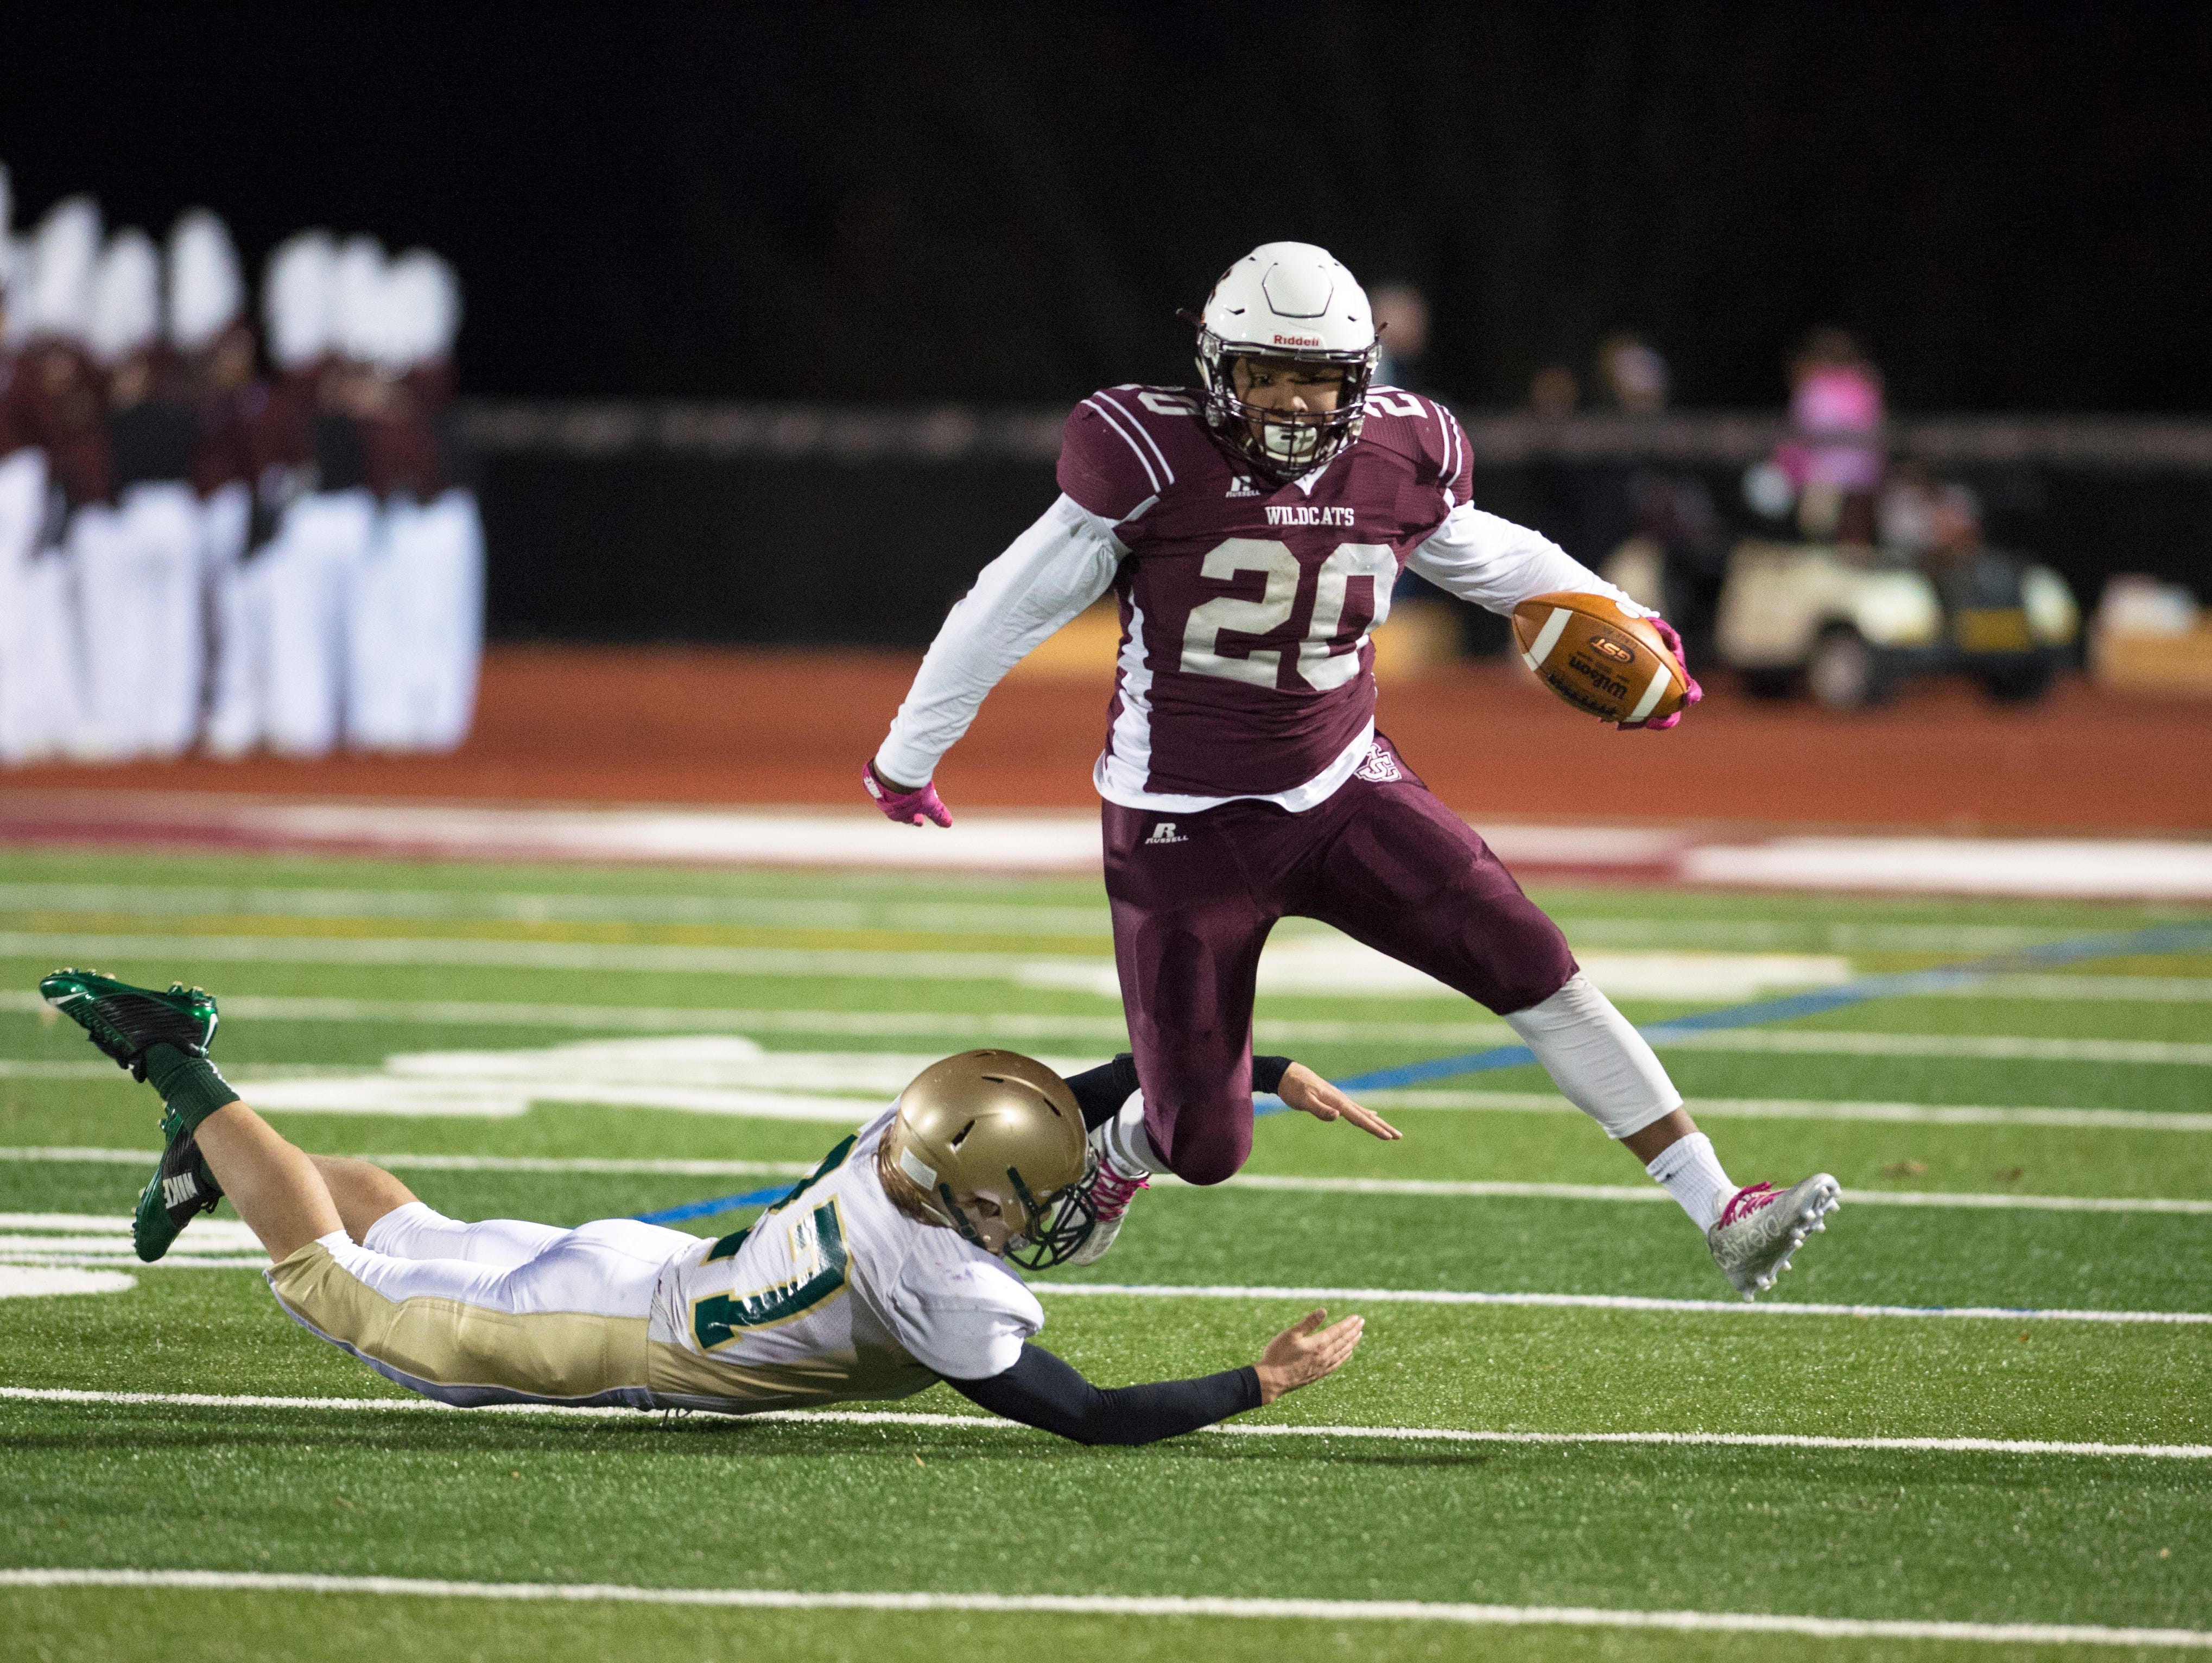 Johnson City running back Dominic Nadz eludes a Vestal defender during the second quarter of JC's 29-6 win over Vestal in the Section 4 Class A semifinal playoff game on Friday.